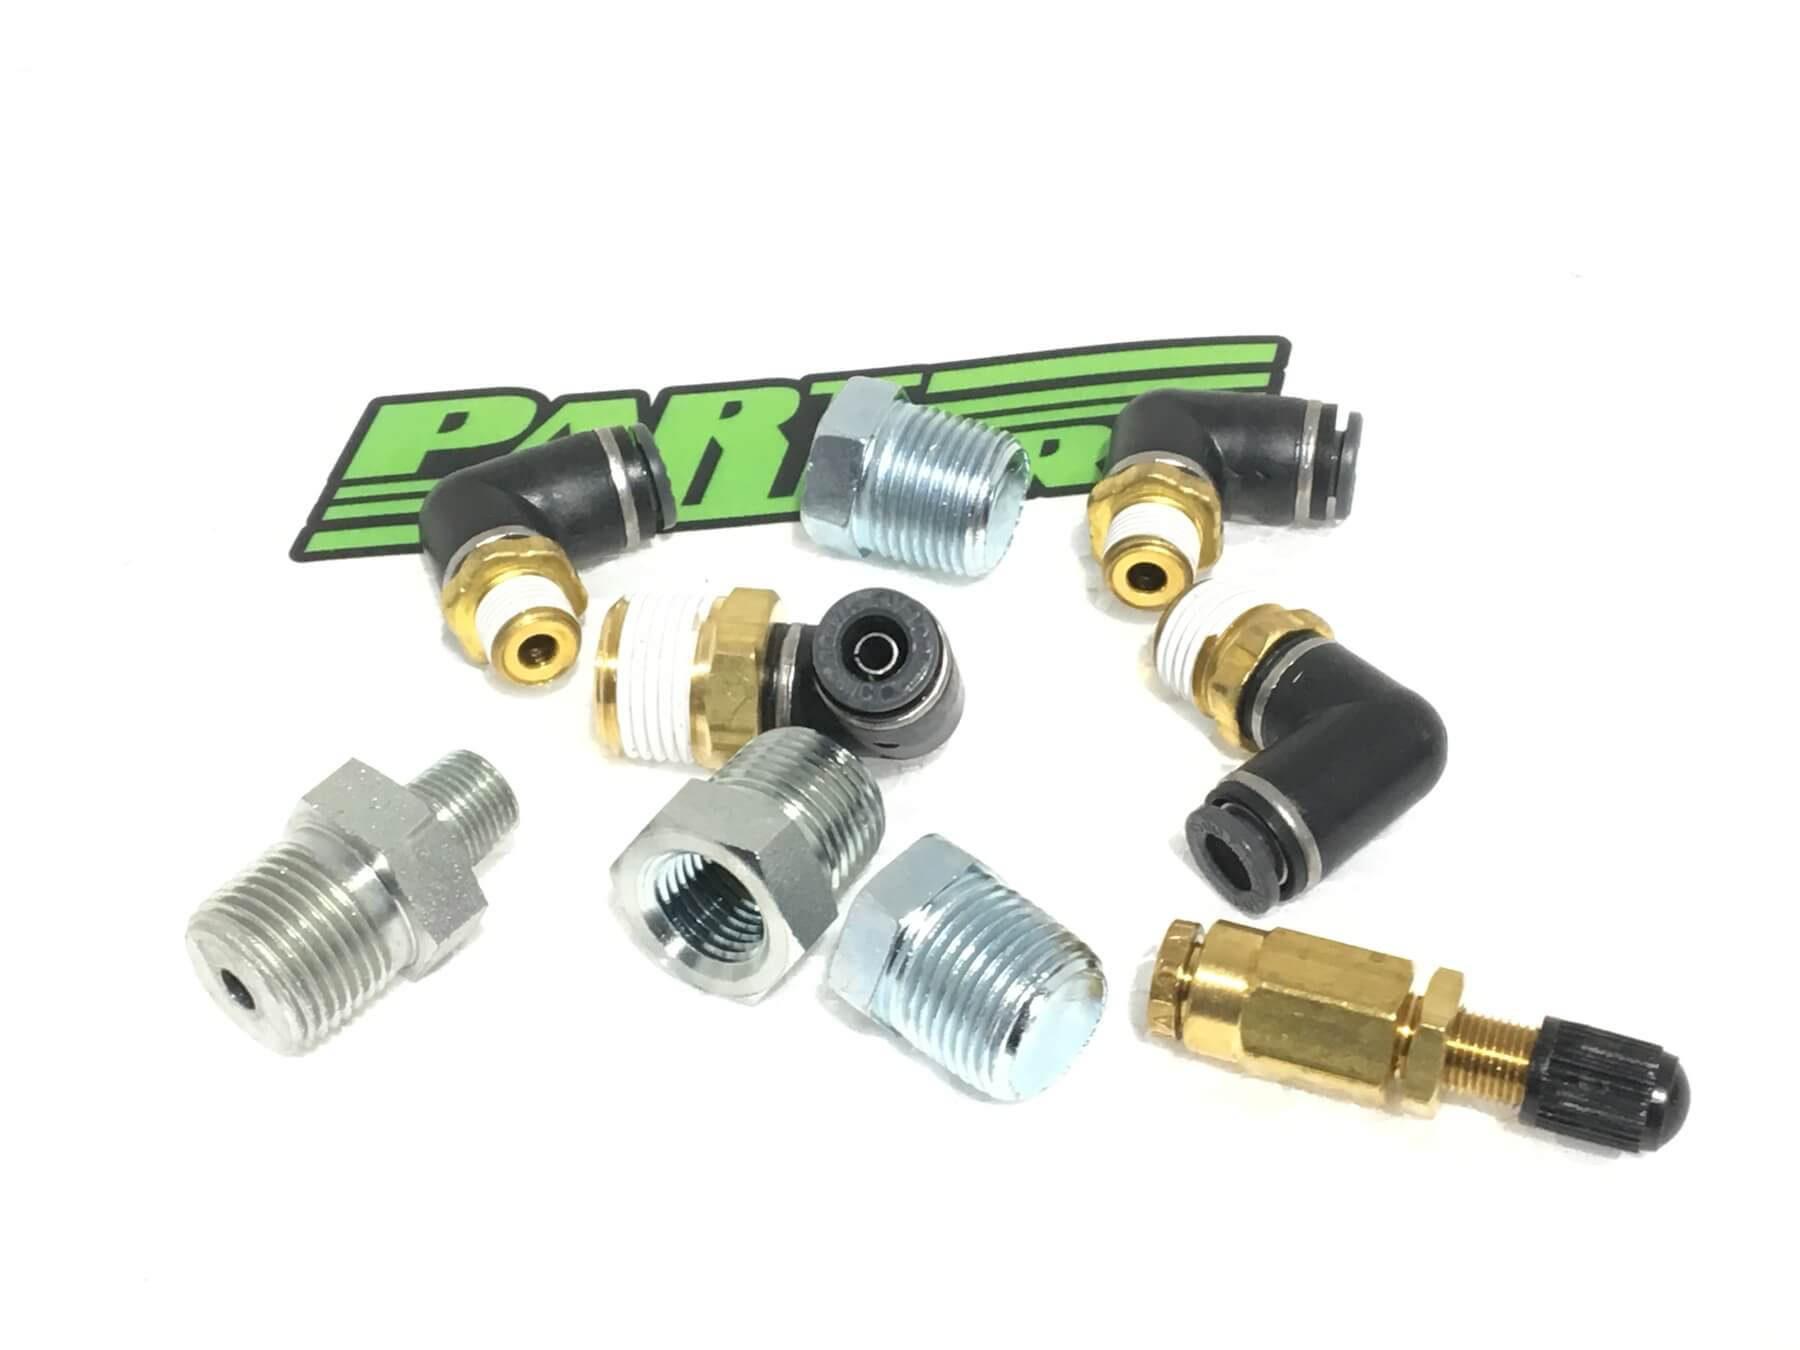 """Air Lift Fitting pack for 5 Gallon Aluminum Tank with 1/4"""" lines and APV2 (11956 or 12956) Air Ride Suspension"""